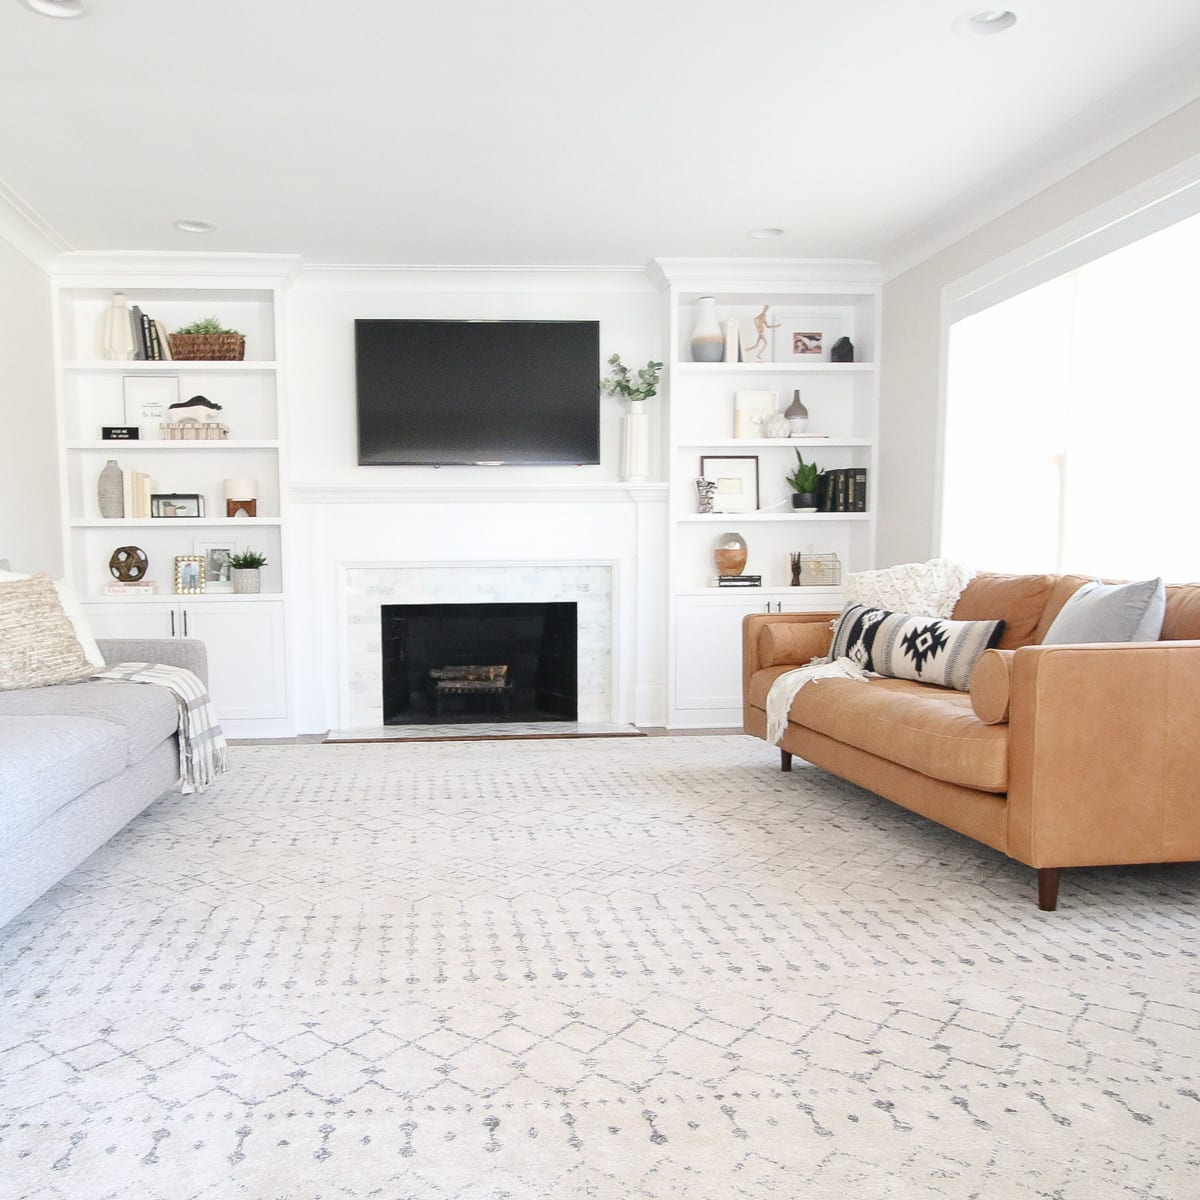 This white and gray area rug complements the leather sofa in a living room.